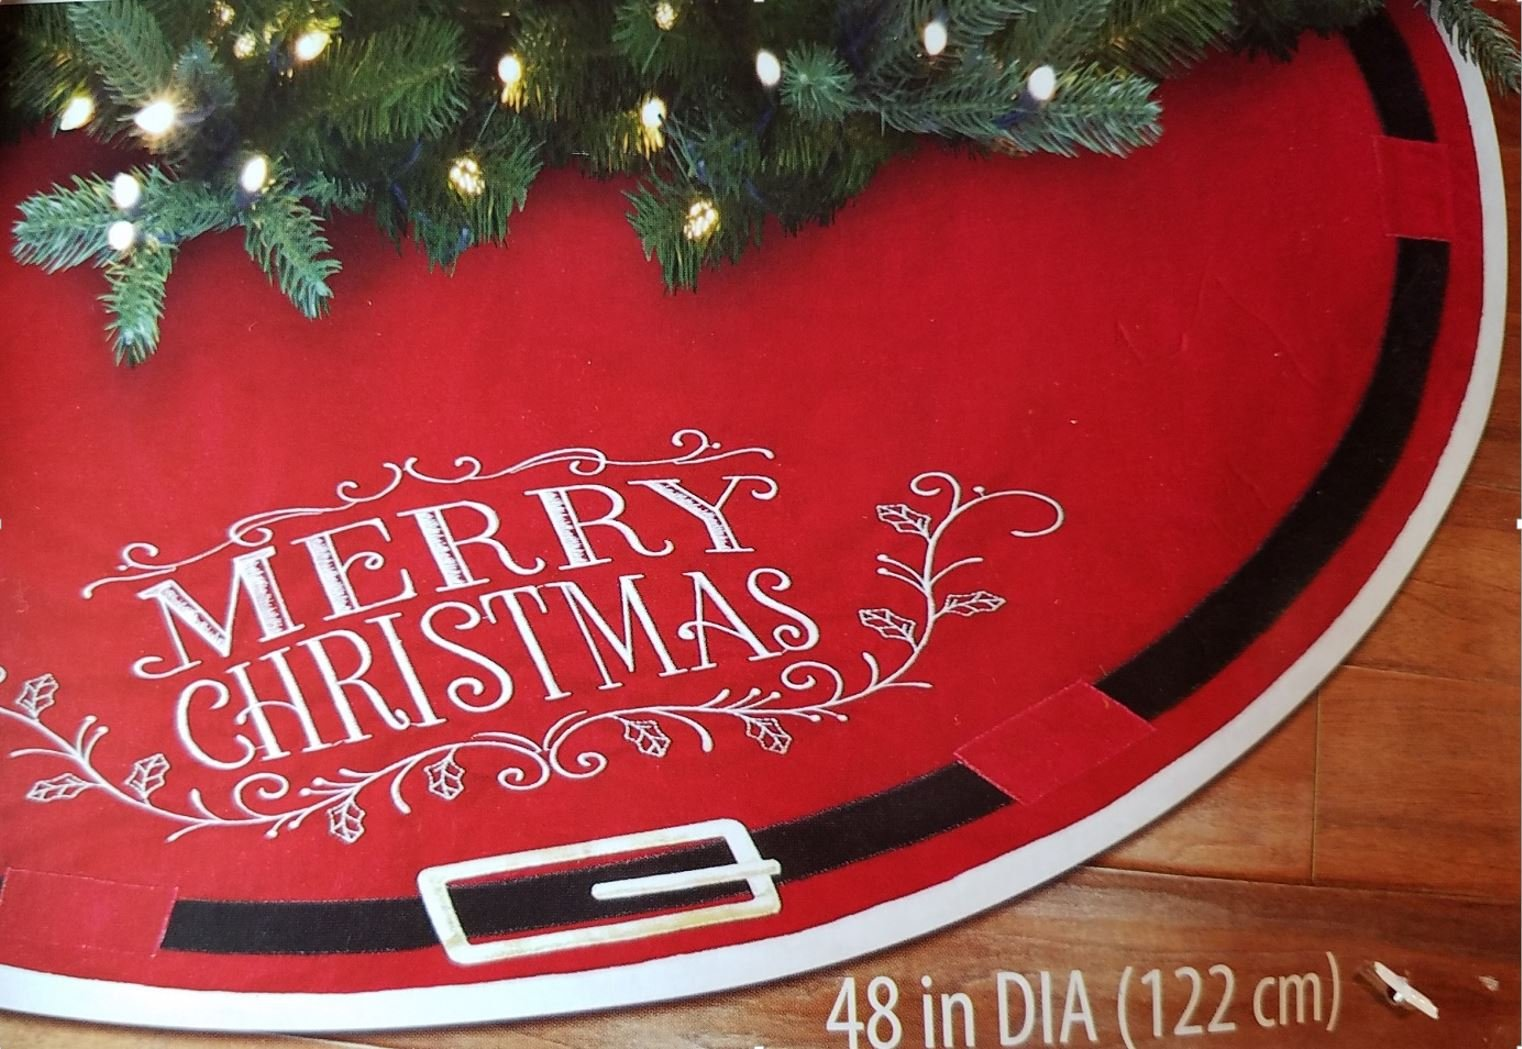 Christmas Tree Skirt - Merry Christmas with Santa Claus Belt Decoration - 48 Skirt by Holiday Time (Image #1)